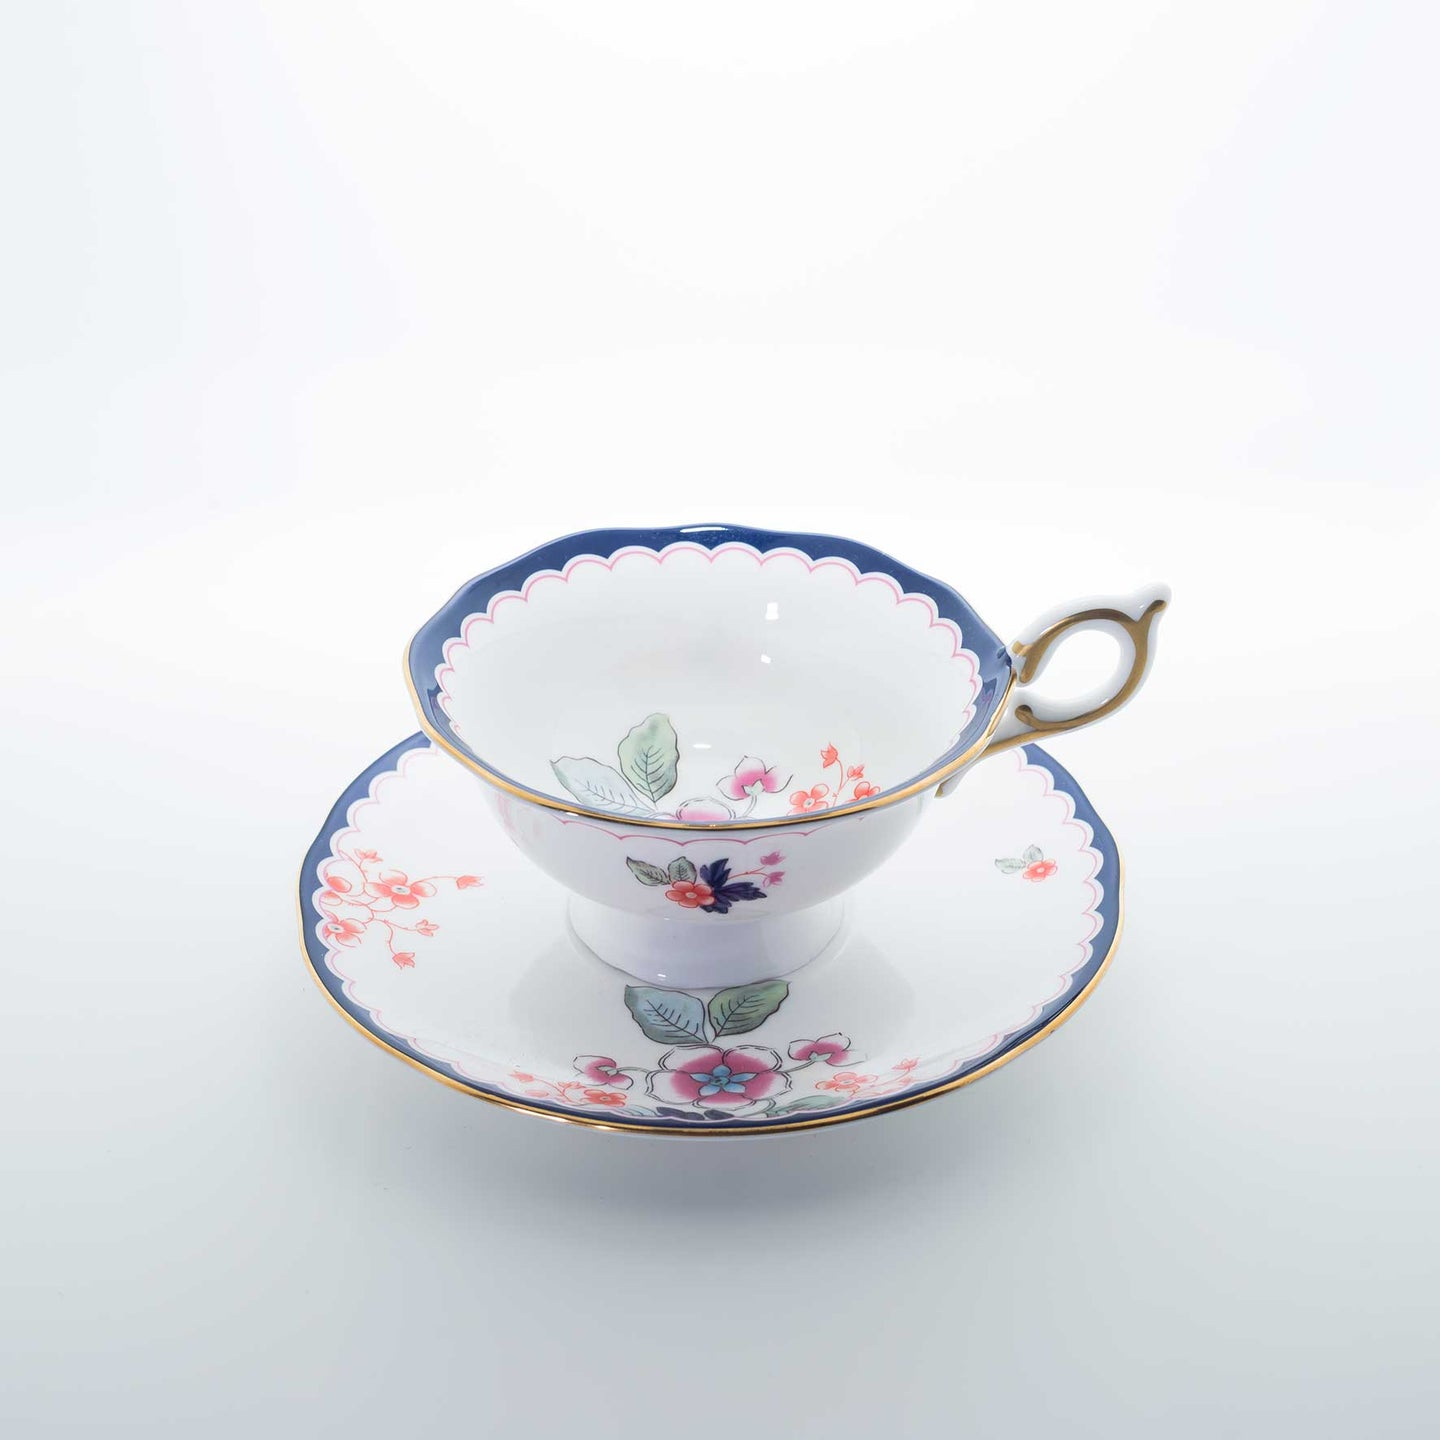 Refresh Moment Wedgwood Wonderlust Jasmine Bloom Teacup & Saucer